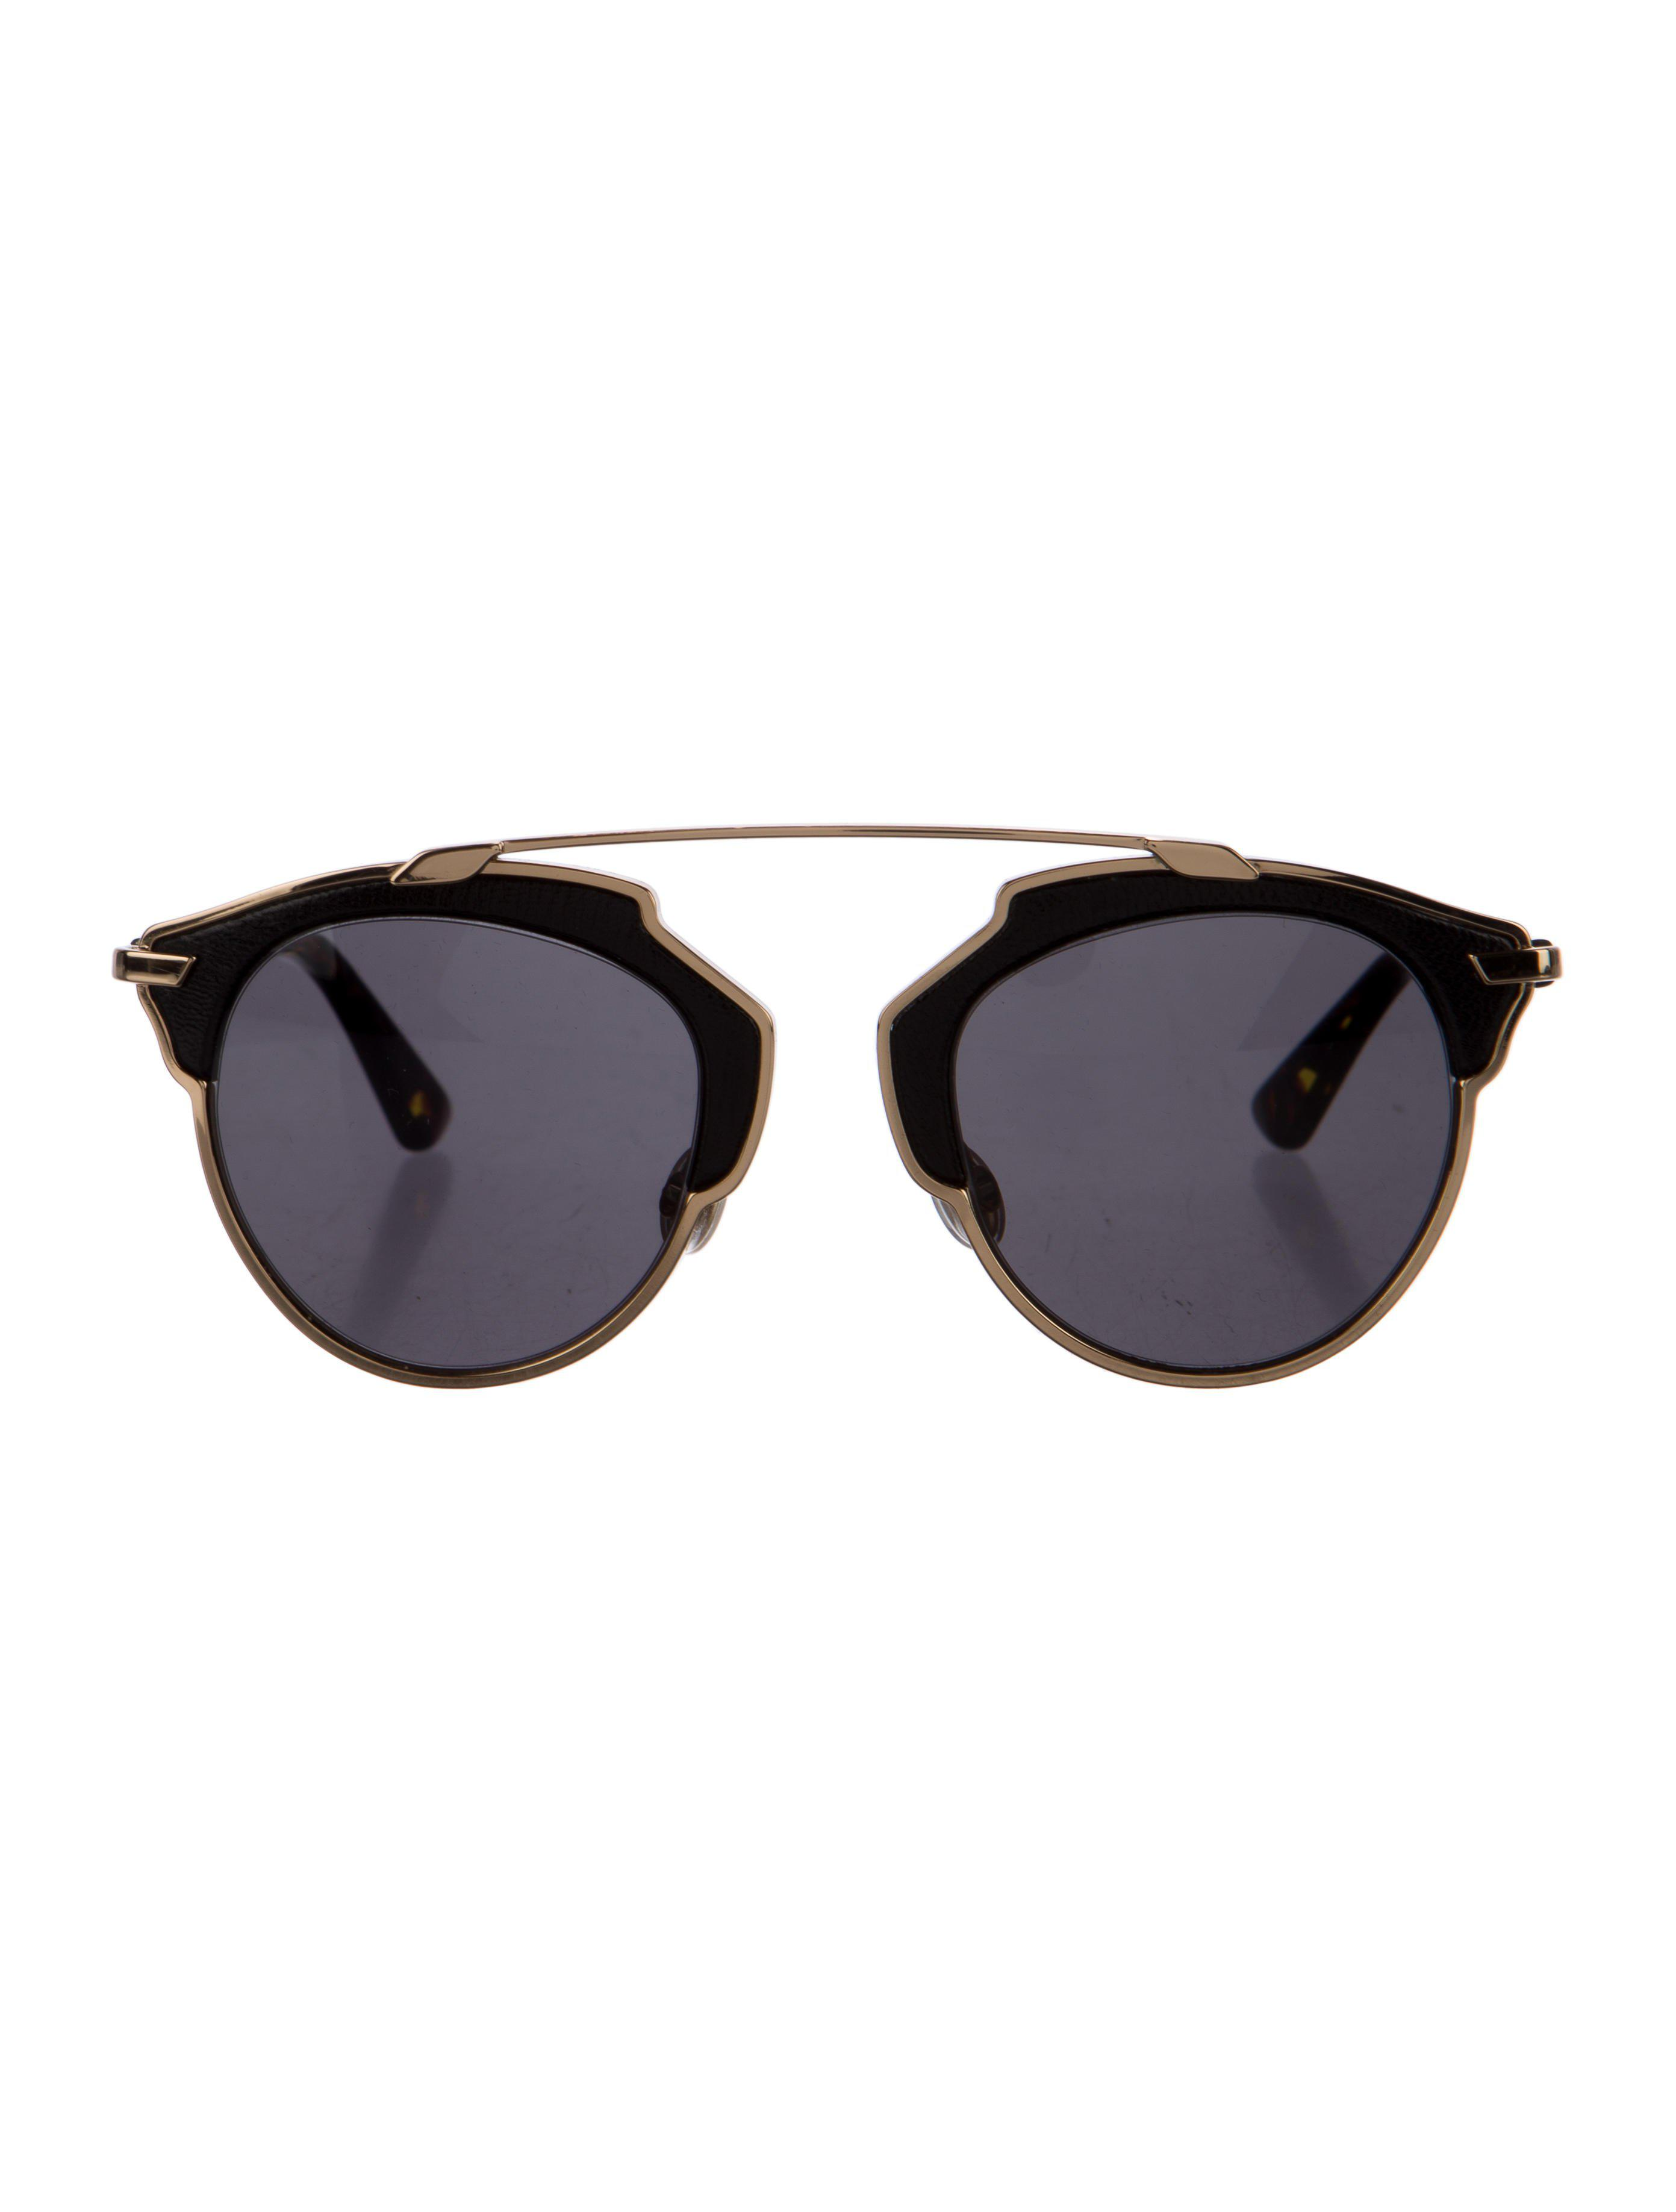 637834d38f3 Lyst - Dior So Real Leather-accented Sunglasses in Brown